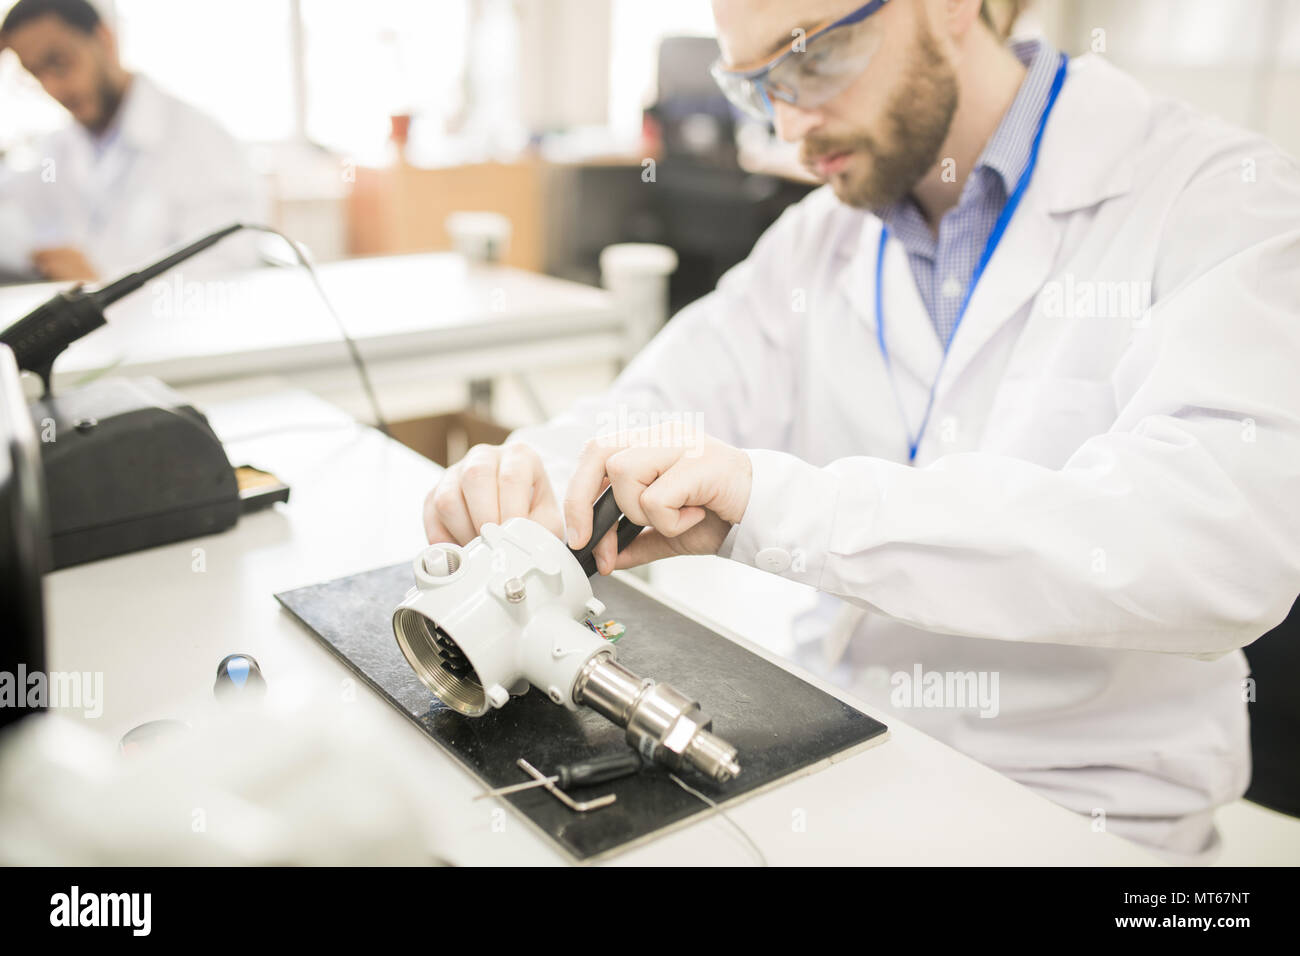 Concentrated technician finding out reason of transducer breakdo - Stock Image